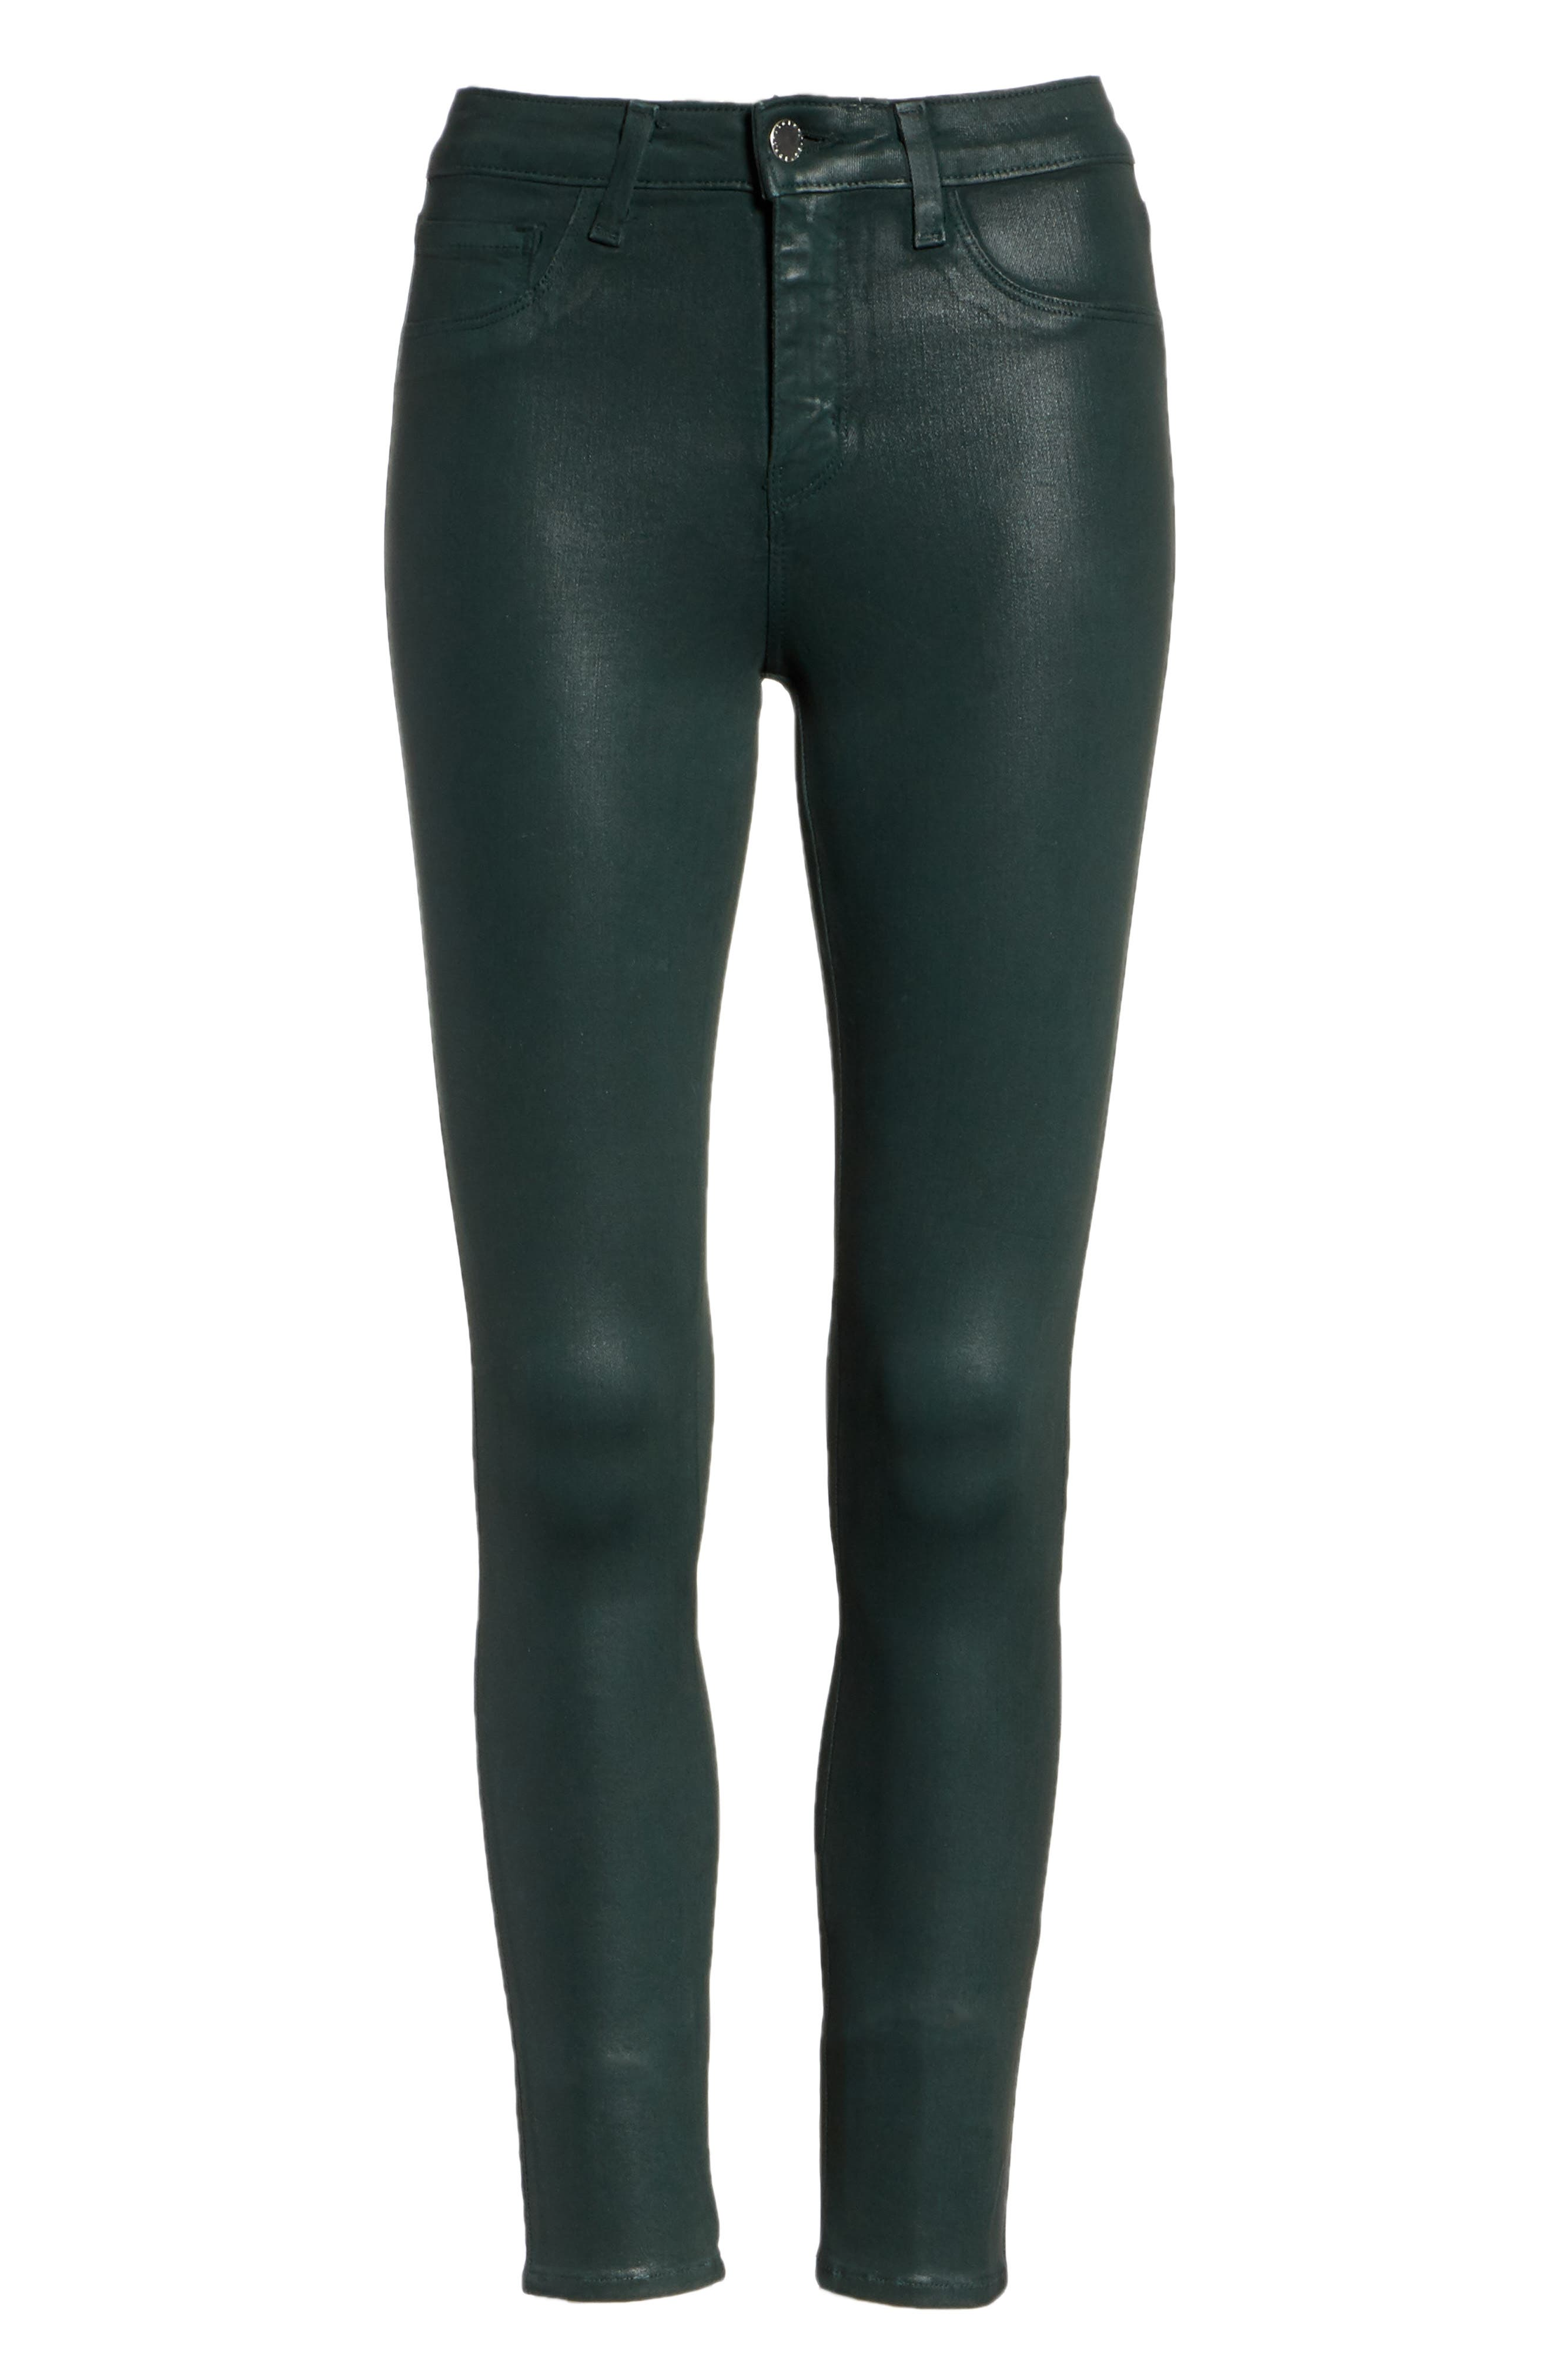 L'AGENCE,                             Margot Coated Crop Skinny Jeans,                             Alternate thumbnail 7, color,                             EVERGREEN COATED